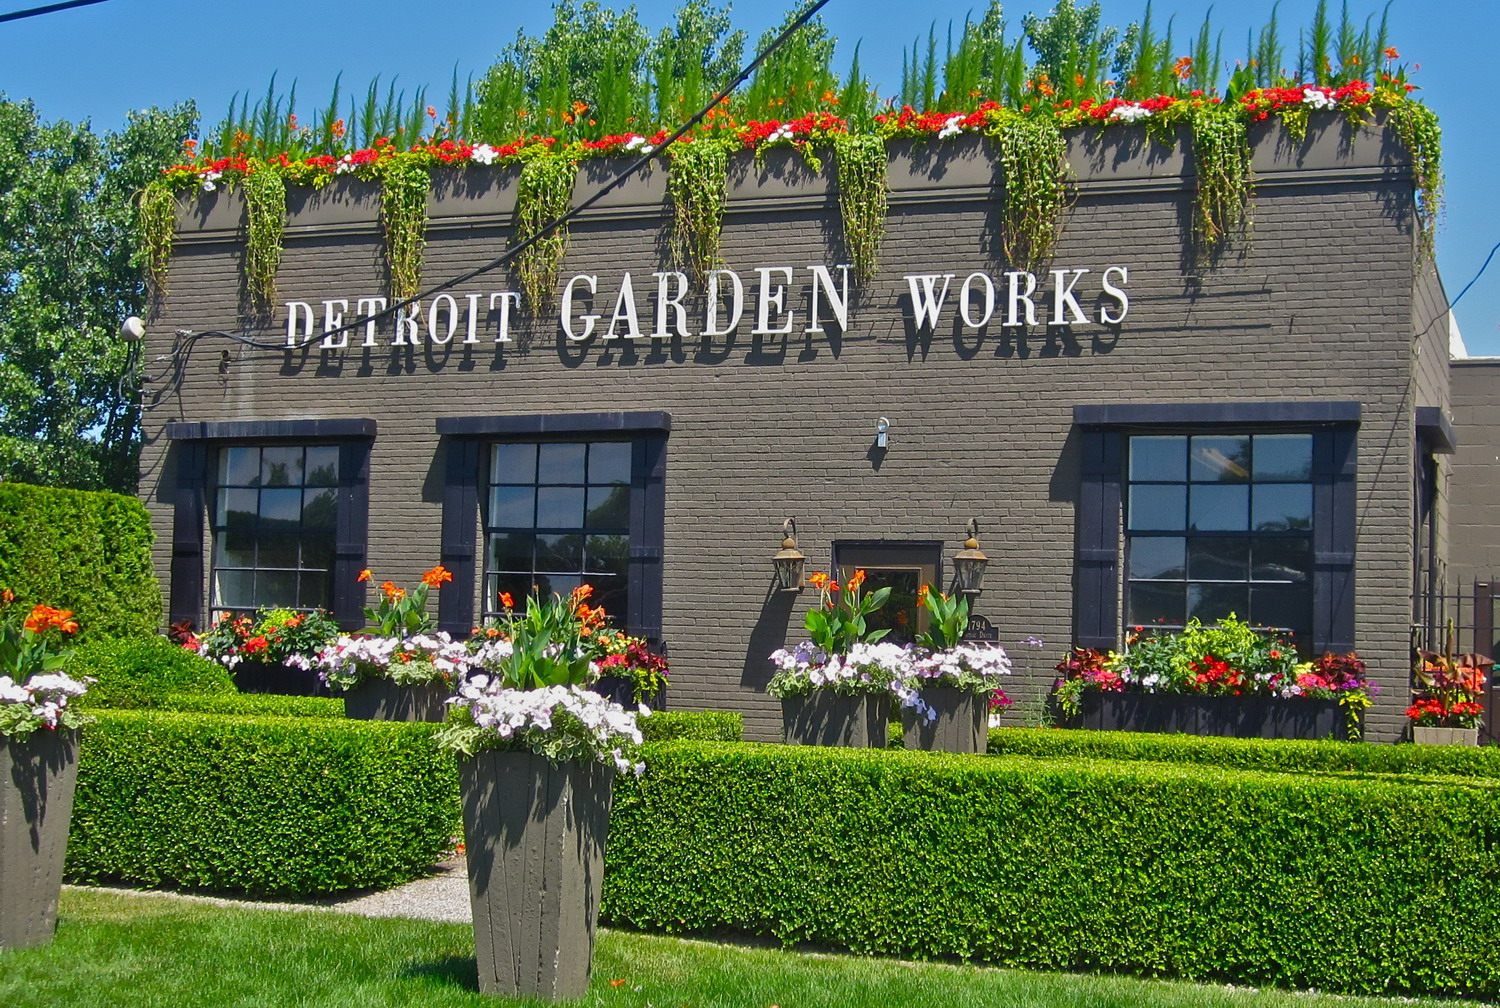 In store detroit garden works garden variety for Gardening and landscaping